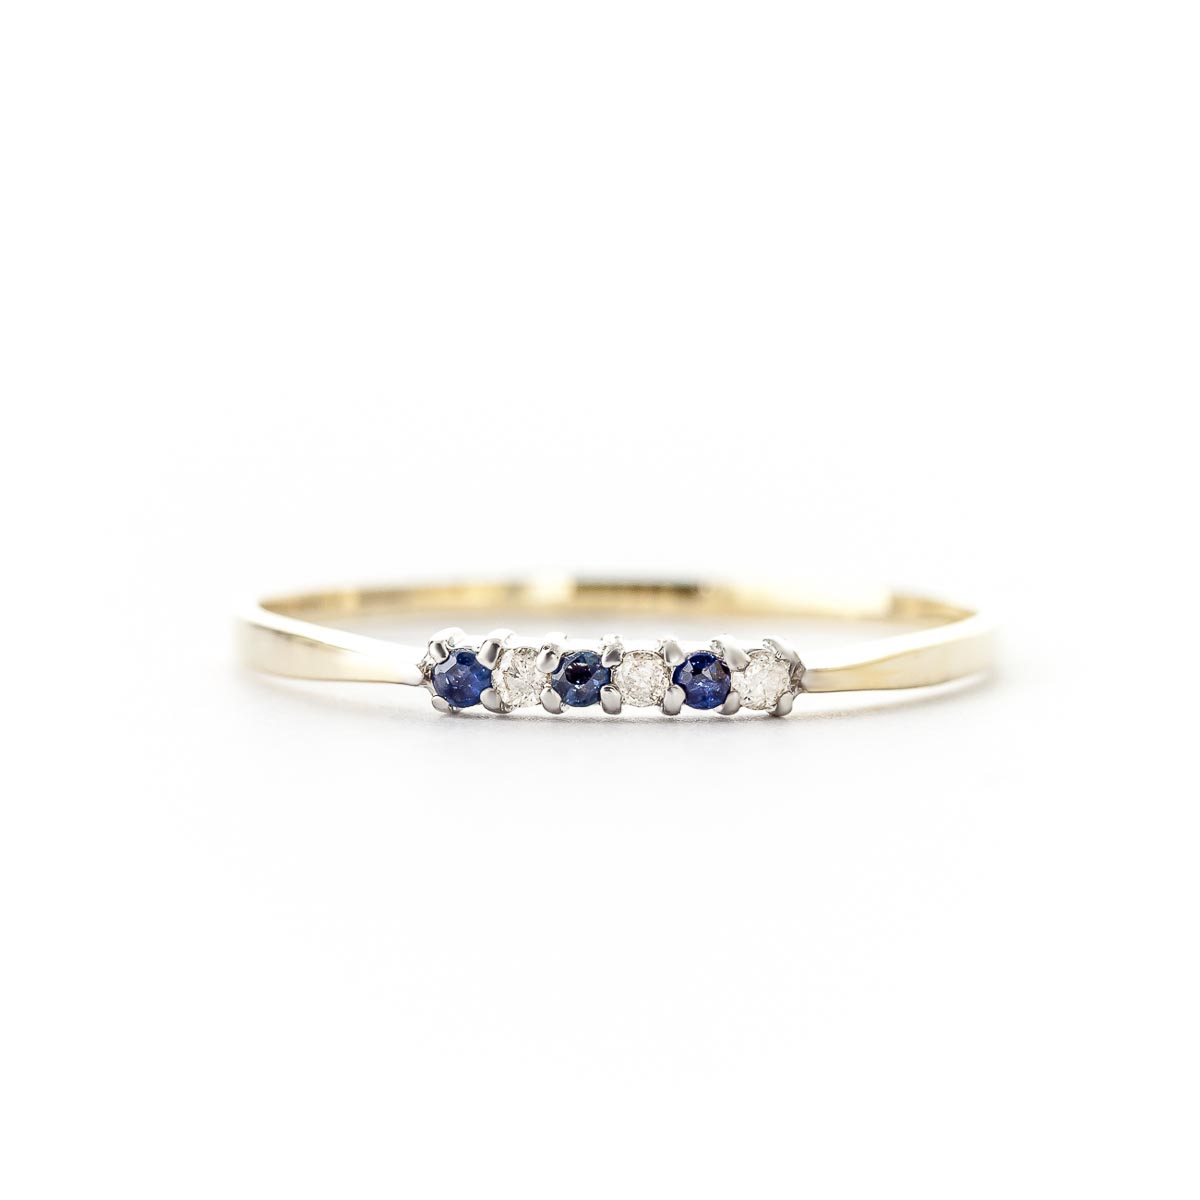 Diamond and Sapphire Ring in 14K Gold